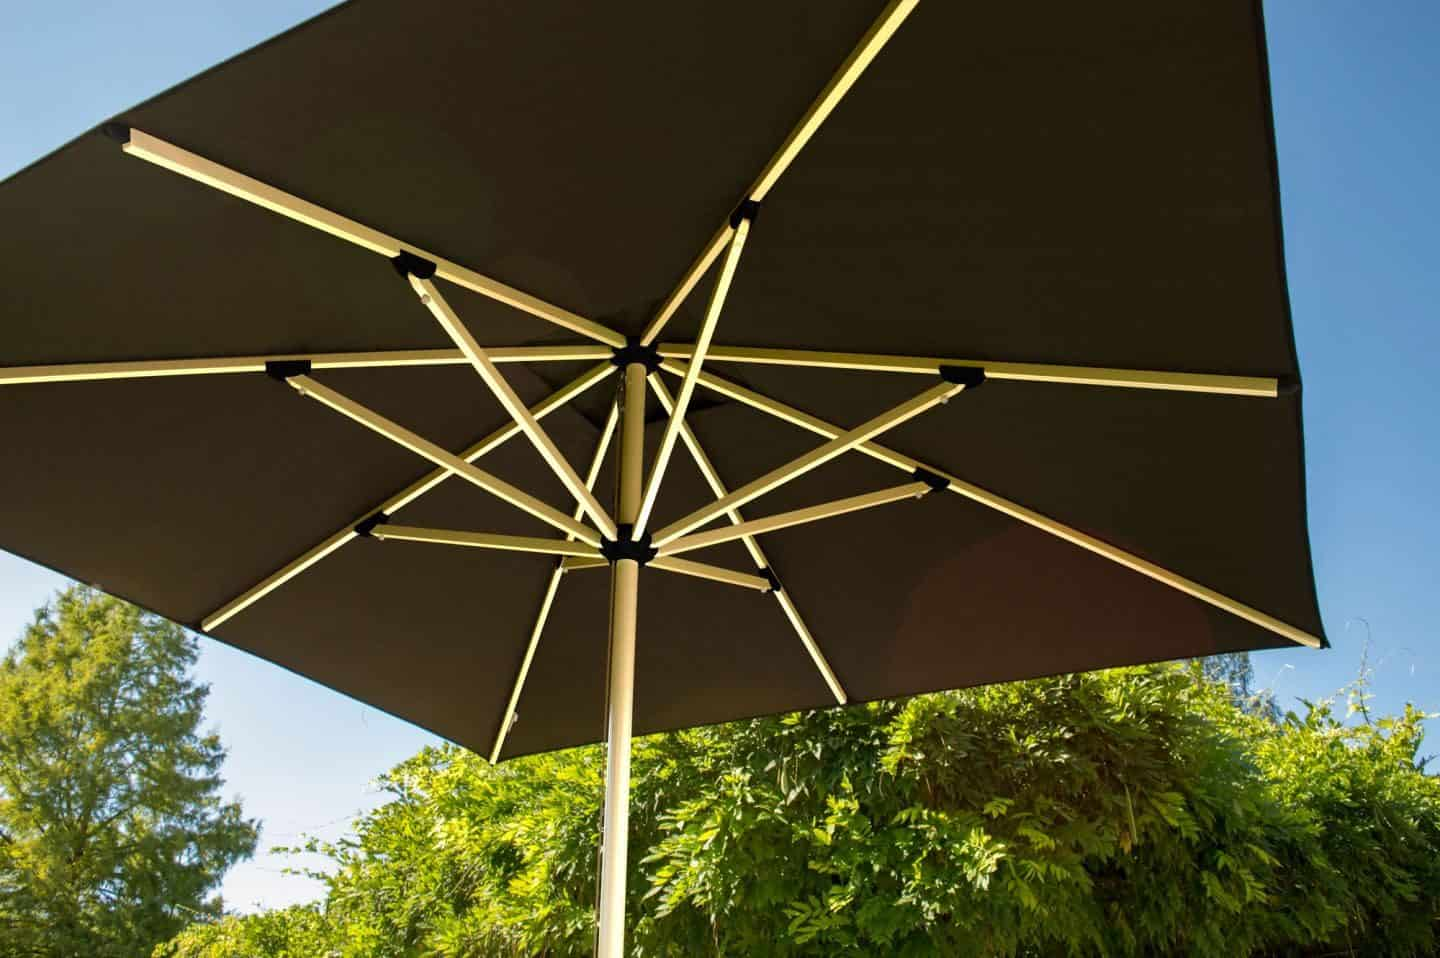 Garden Parasol from Solero Parasols.  The view of the spokes beneath the parasol.